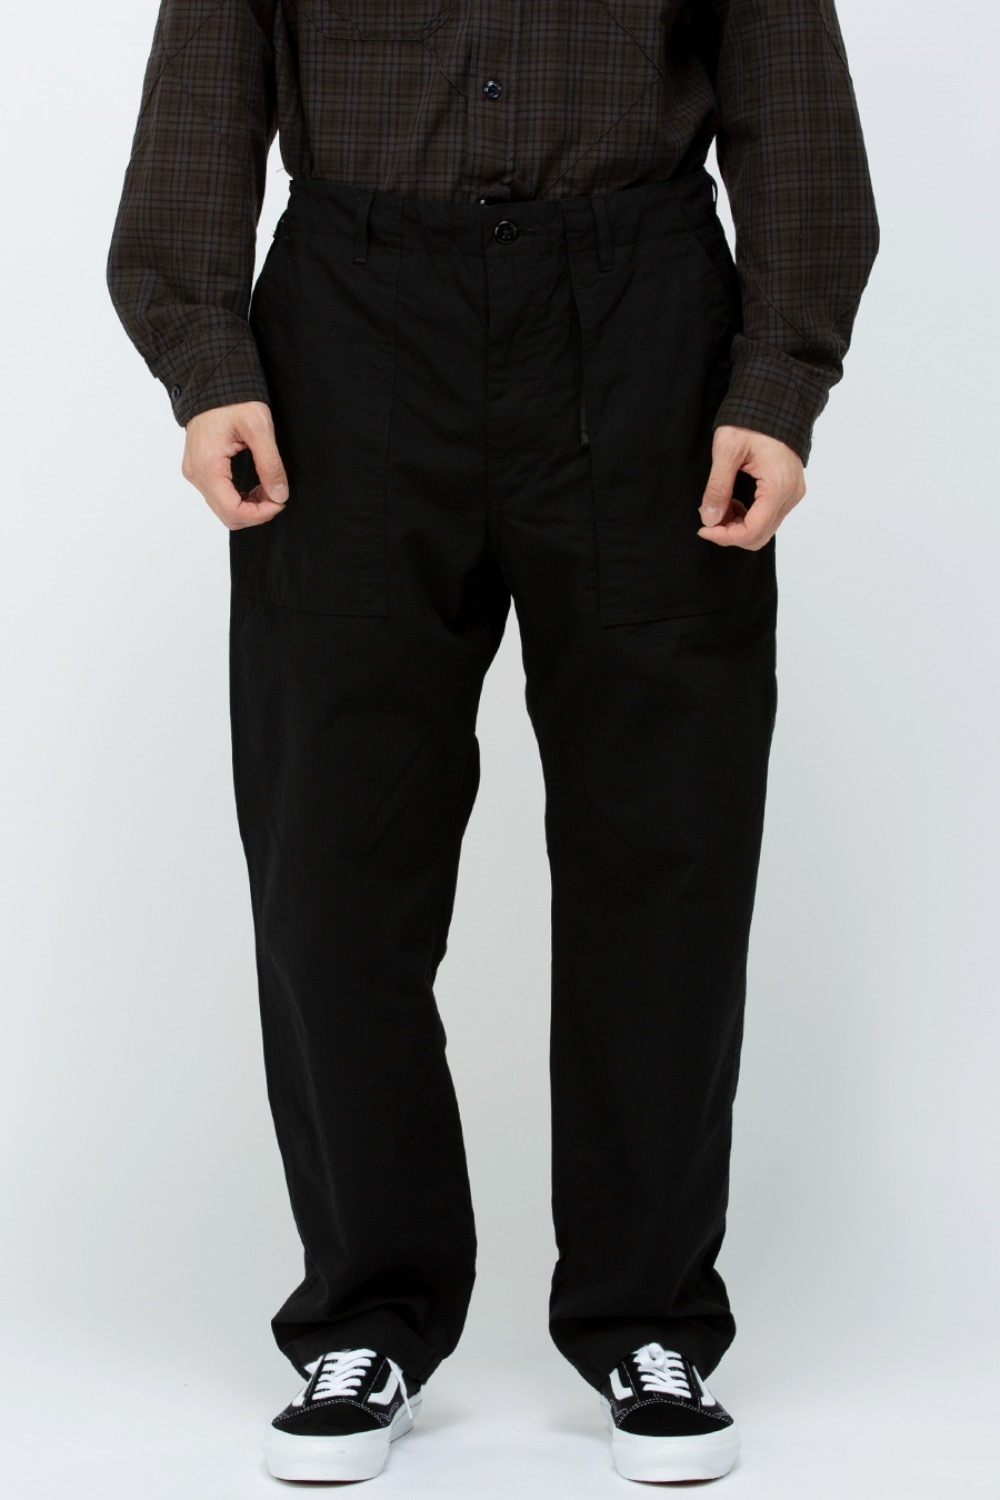 FATIGUE PANT COTTON RIPSTOP BLACK